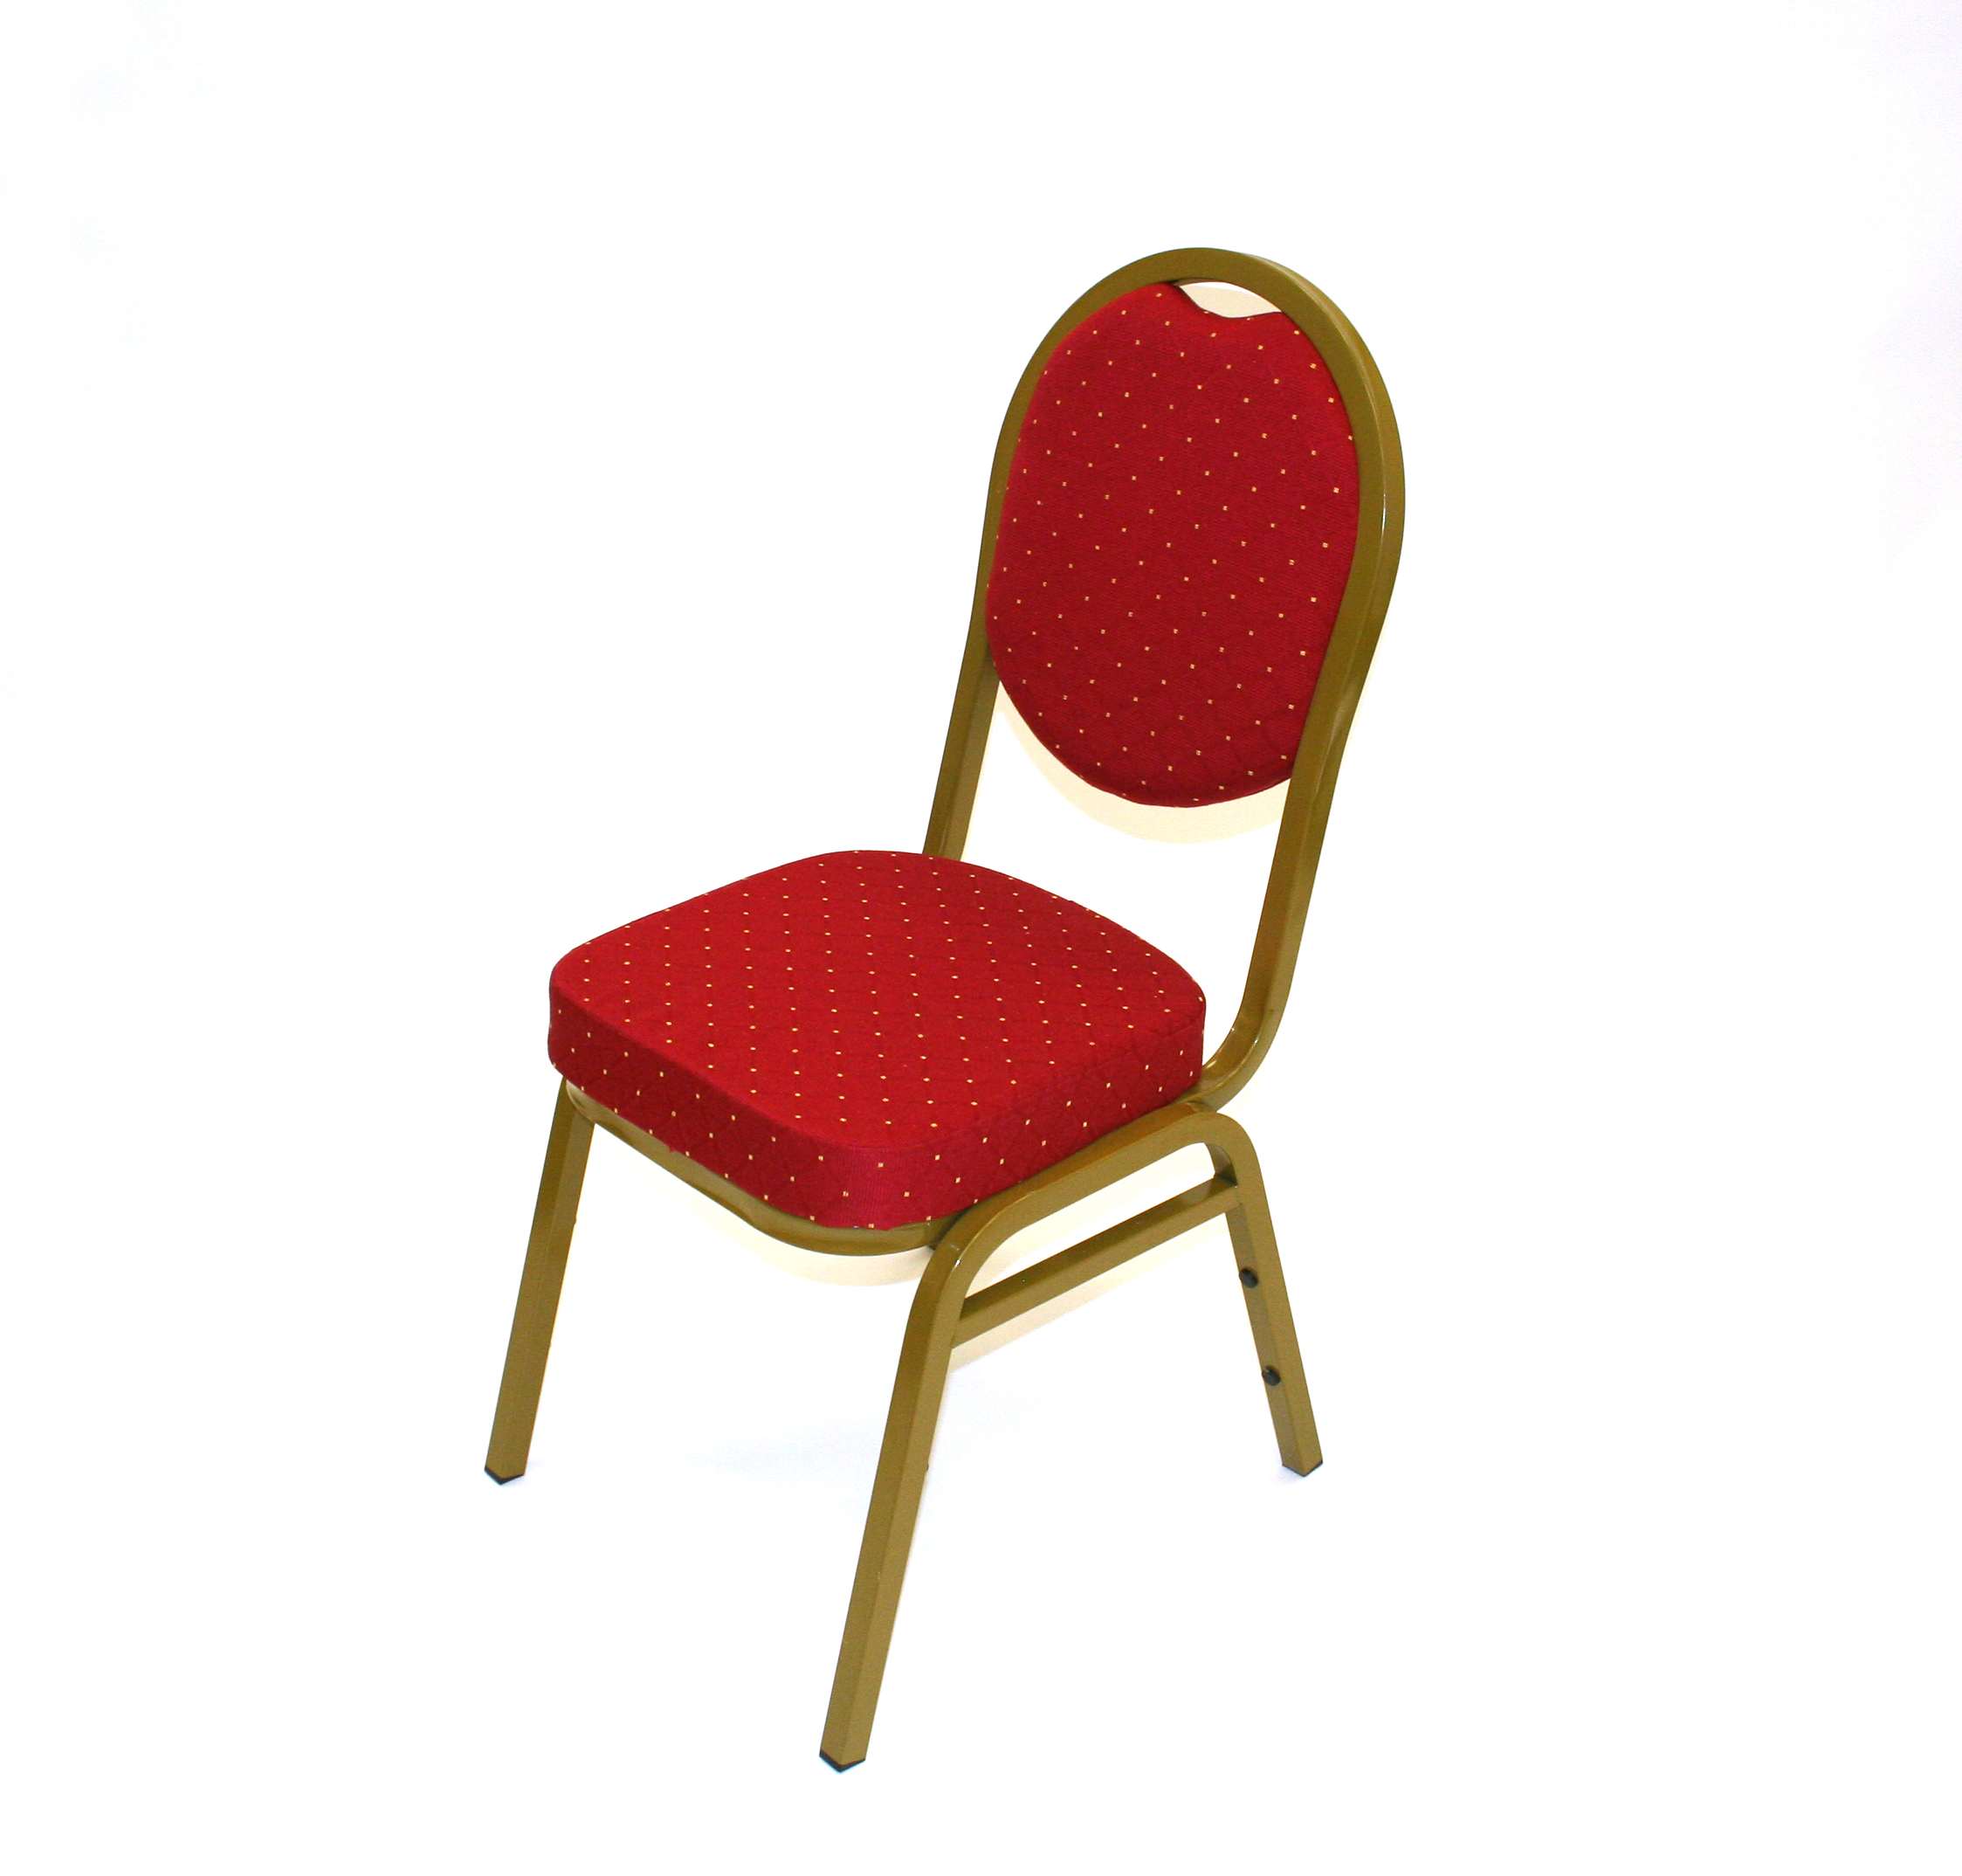 Premium Red Banqueting Chair Hire - Weddings, Events, Banqueting Chairs - BE Event Hire